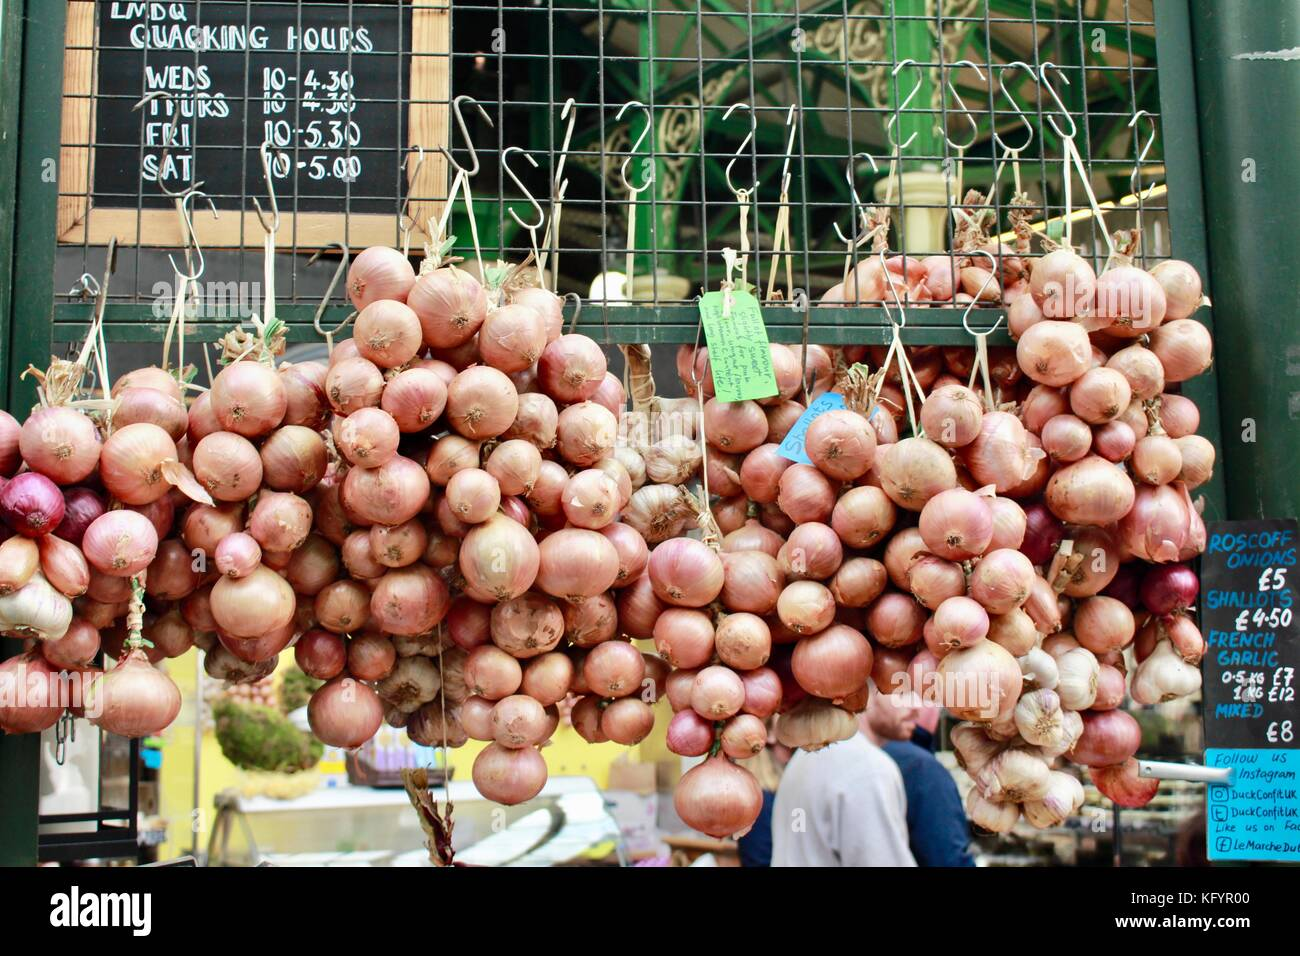 Bunches of ripe onions hanging in London, Borough market. - Stock Image